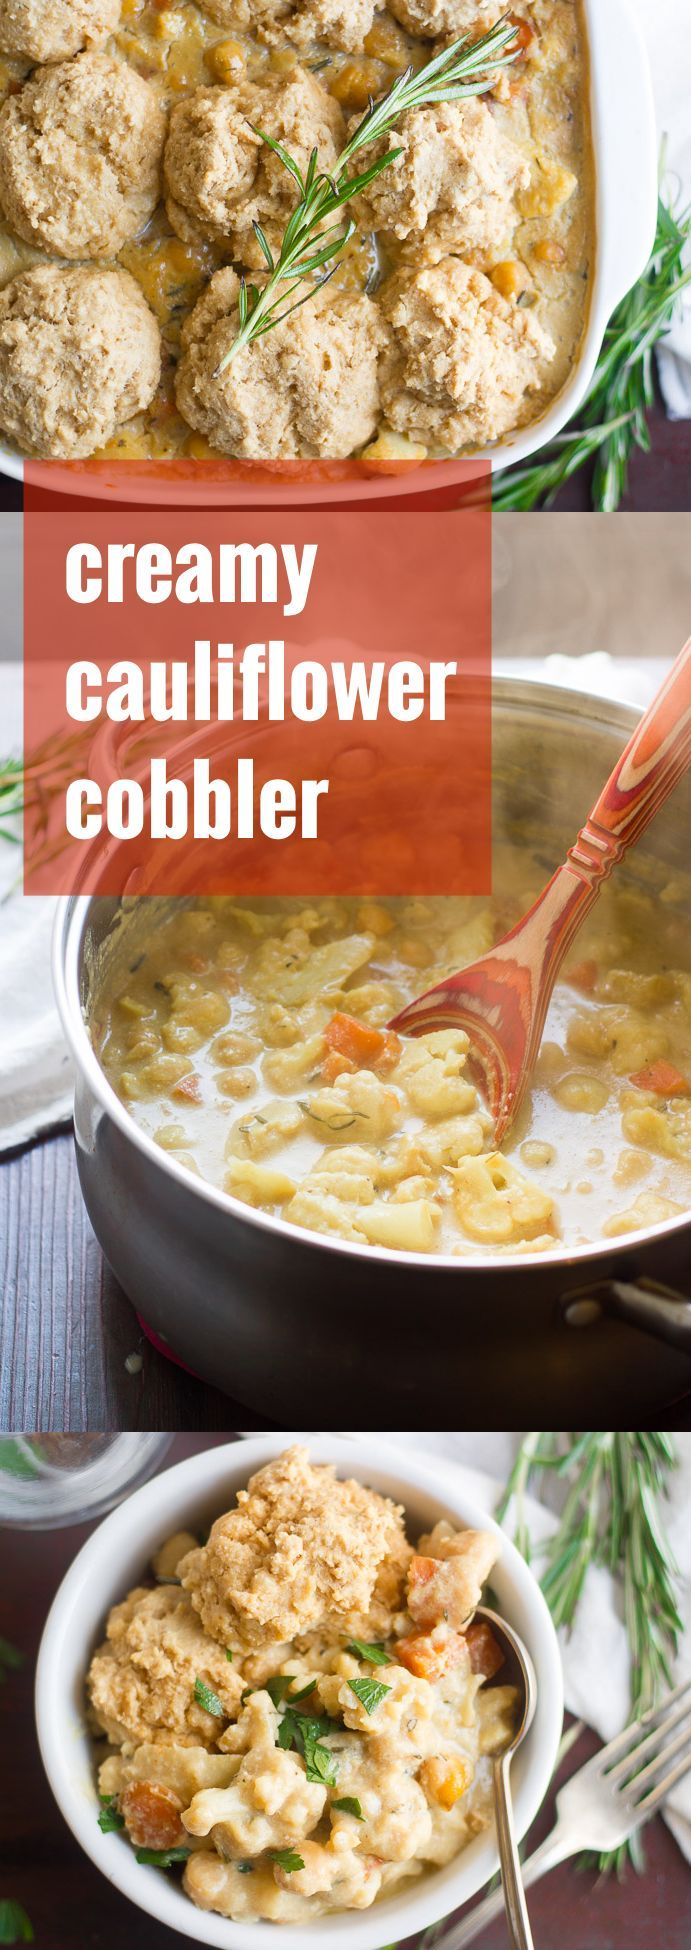 Tender bits of cauliflower, carrots, parsnips and chickpeas are simmered in creamy dairy-free sauce and baked up in a fluffy biscuit-topped casserole to make this savory vegan cobbler.